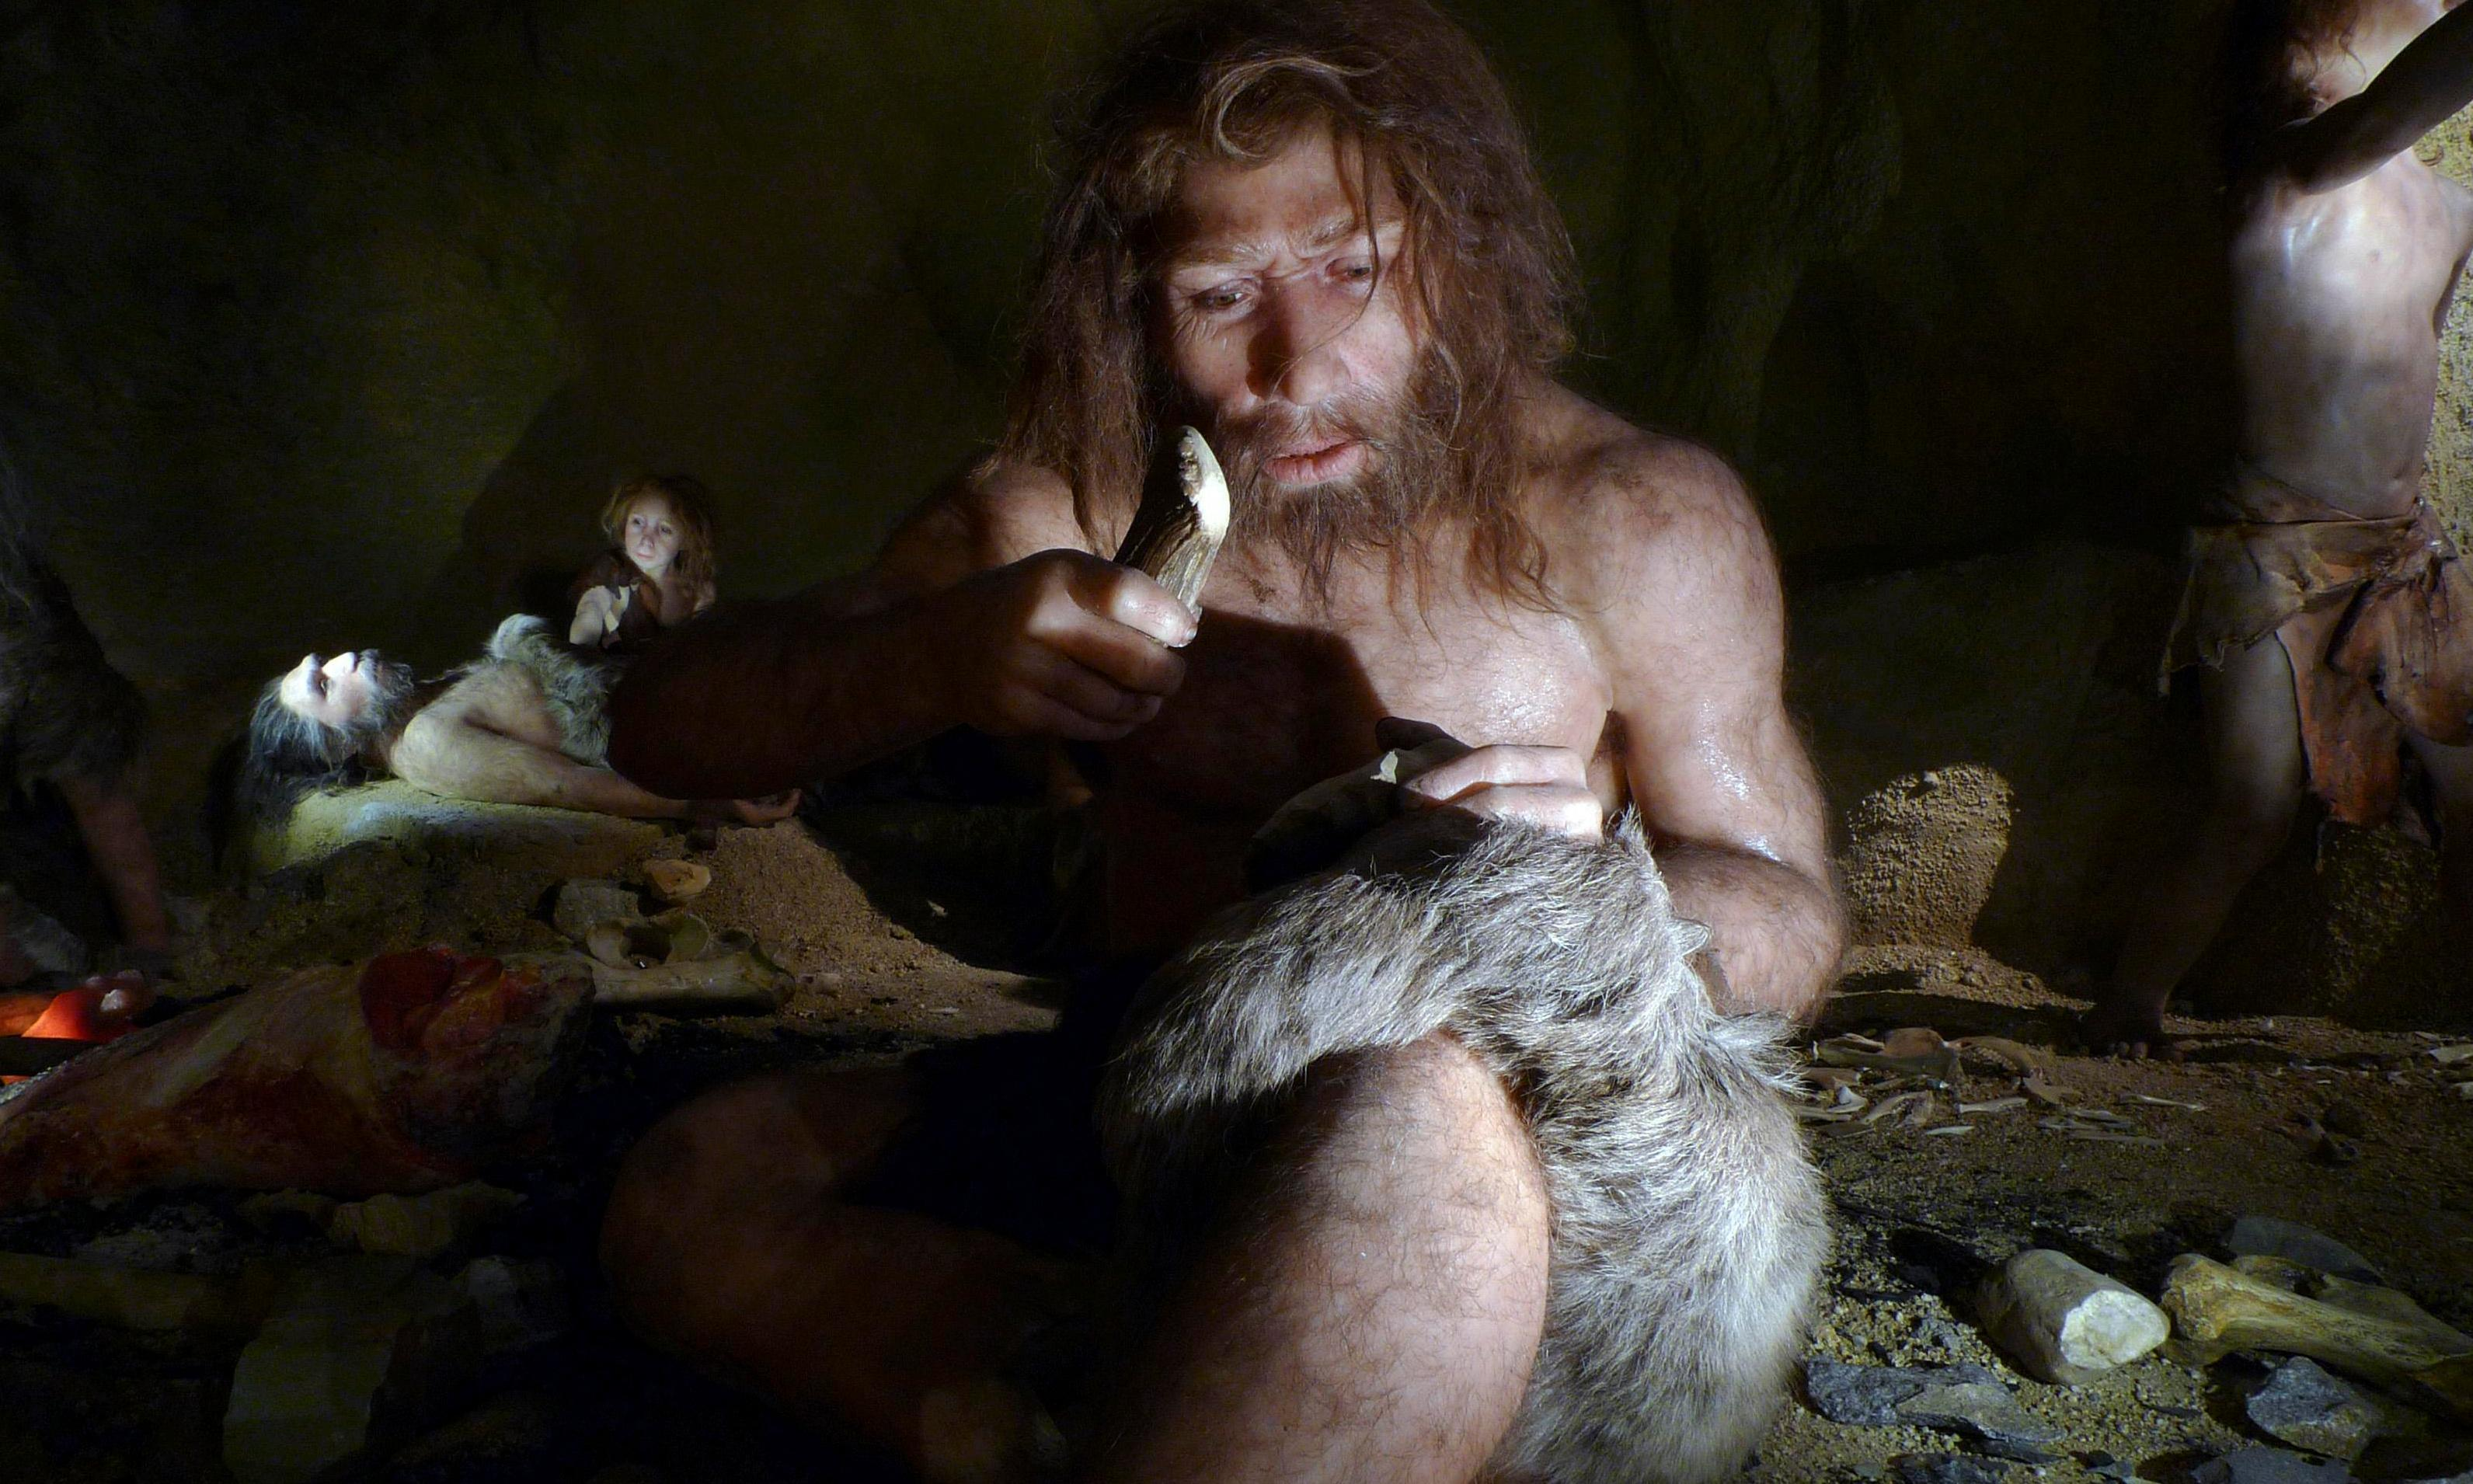 The five: surprising talents of the Neanderthals